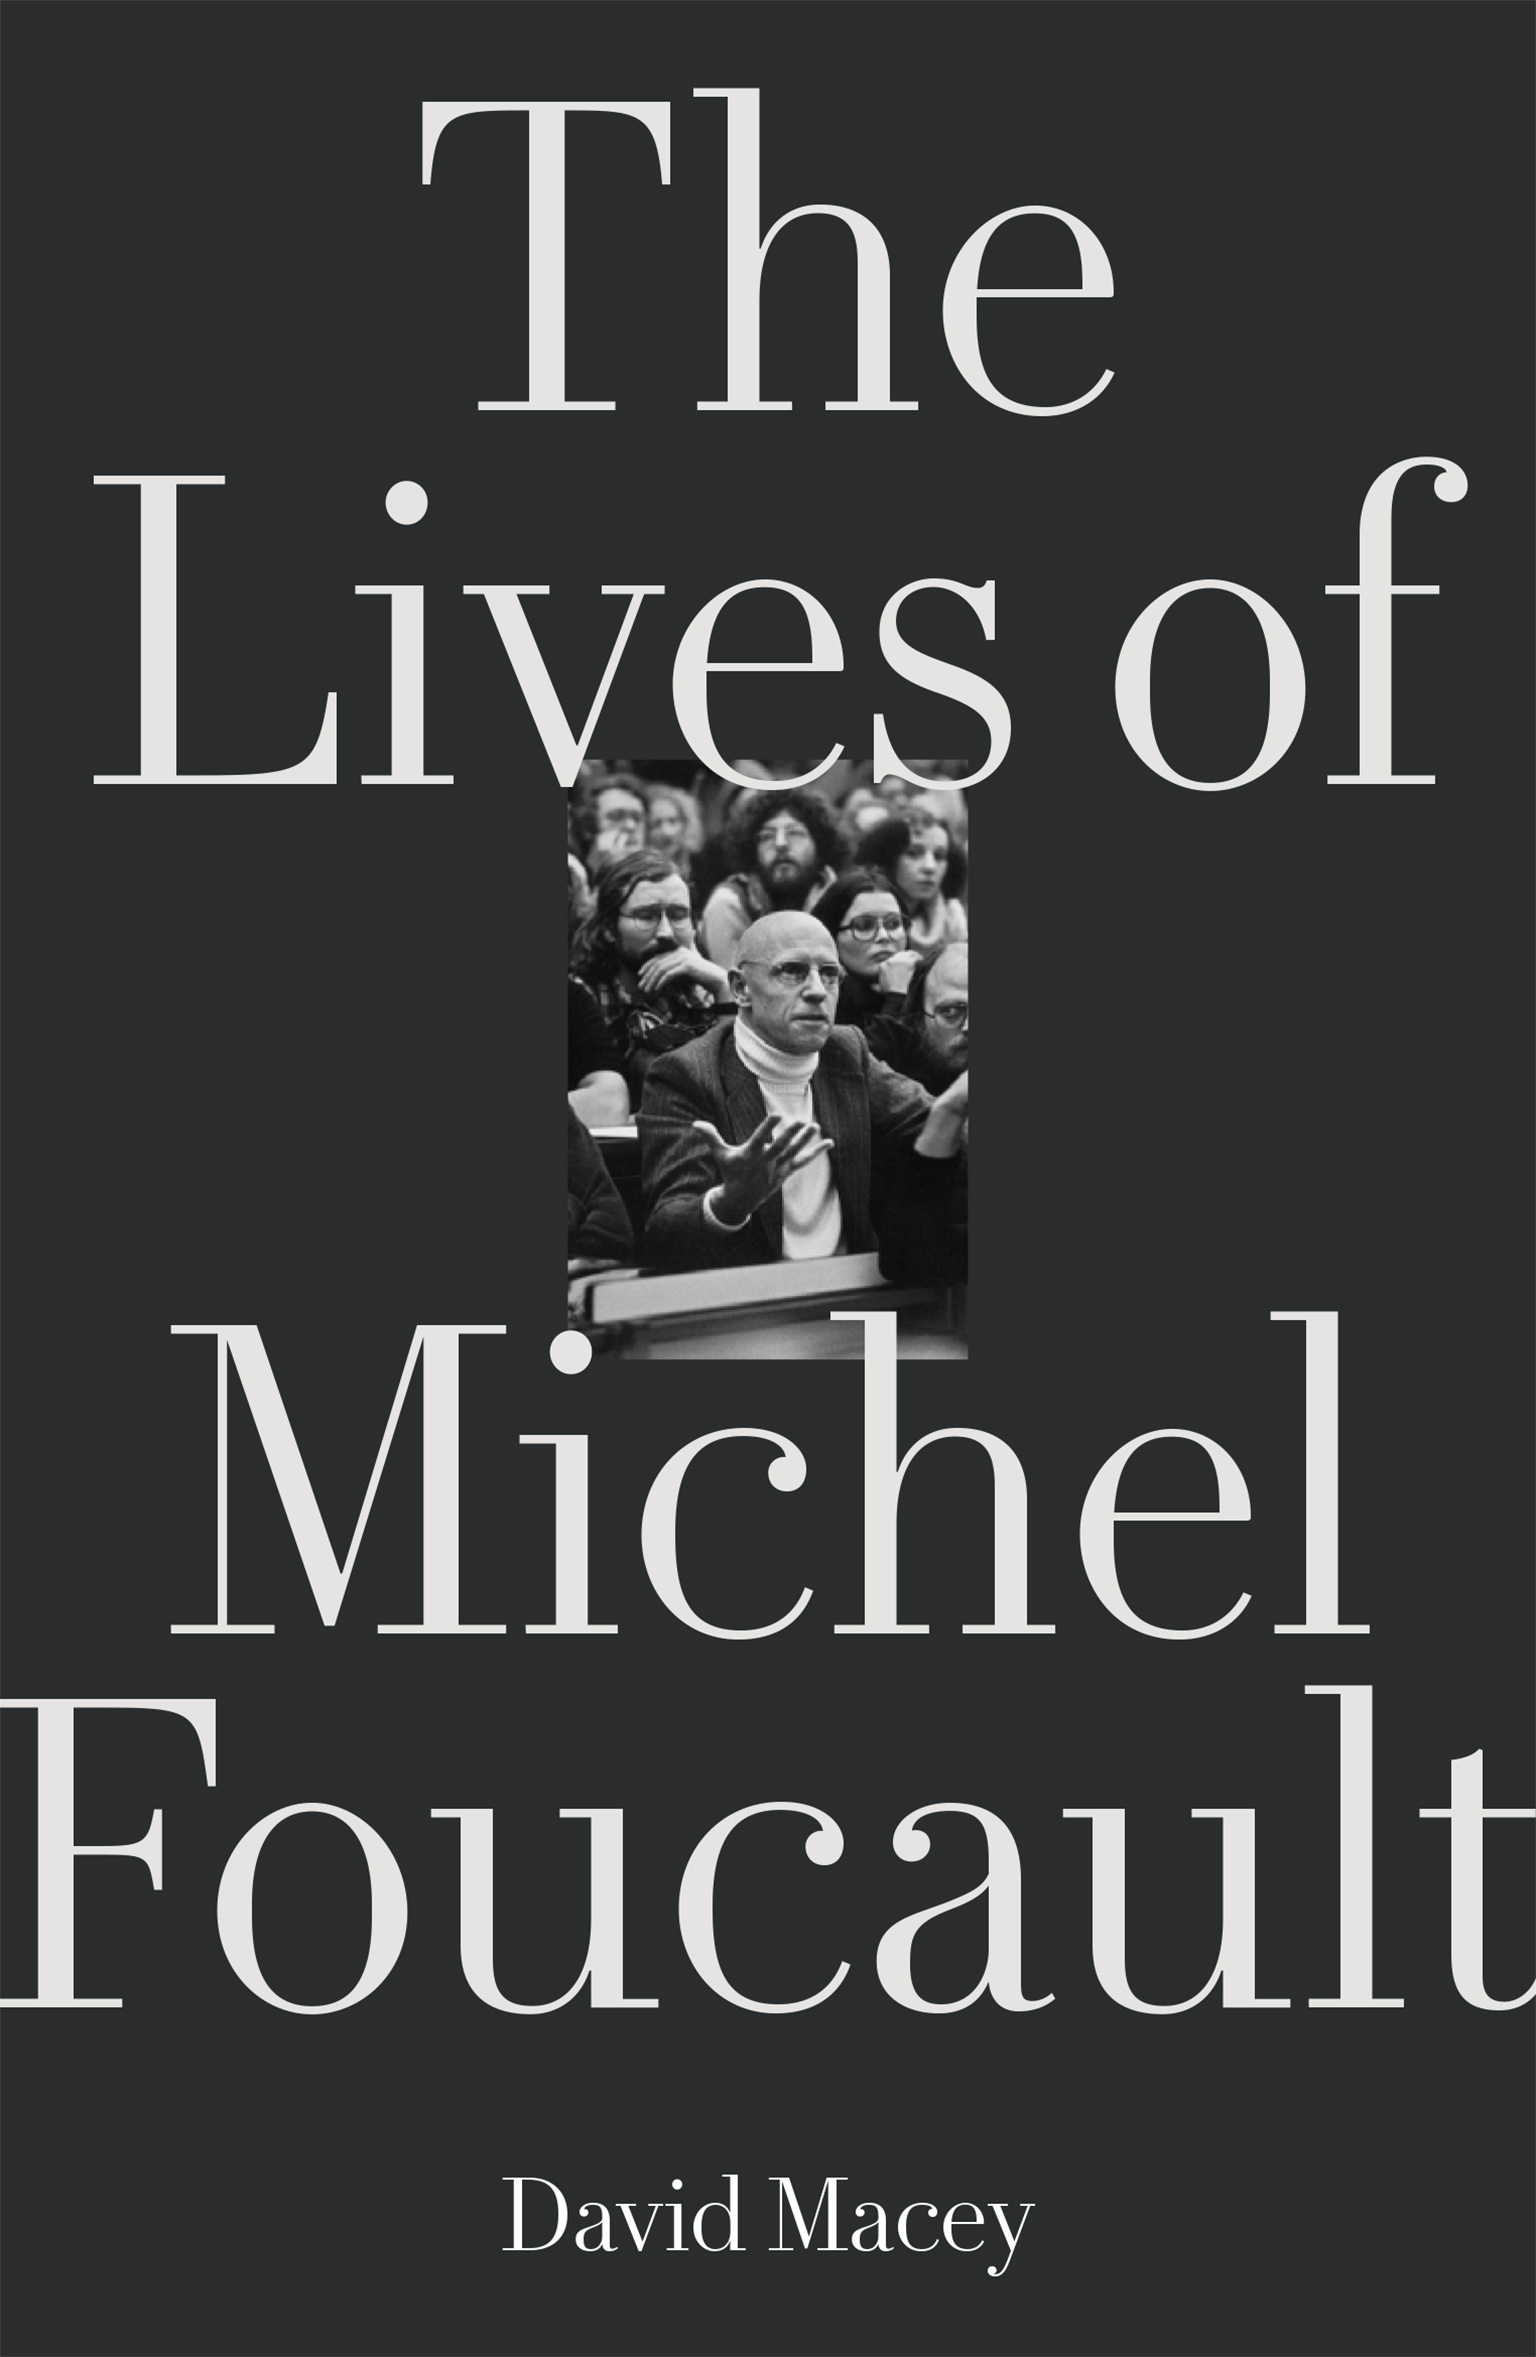 Macey lives of foucault dragged 650f6b95125d9c2c43a563be8ebe9690g fandeluxe Image collections